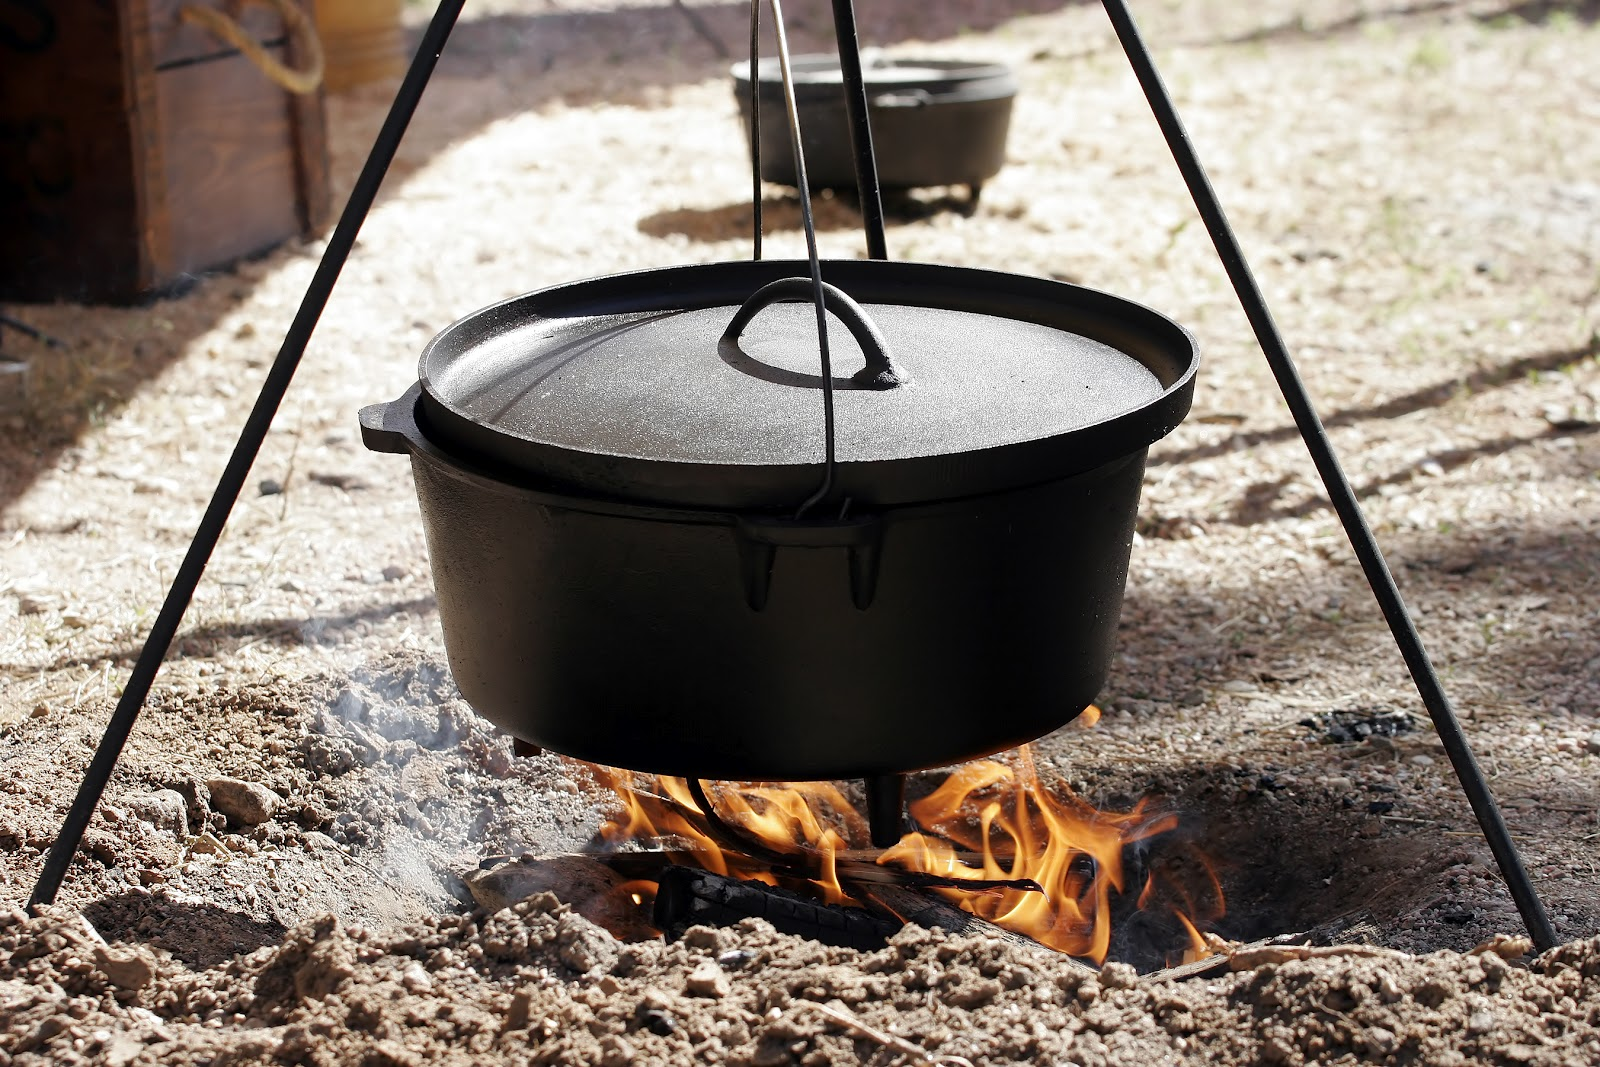 Farmington ut west stake provident living dutch ovens for Dutch oven camping recipes for two